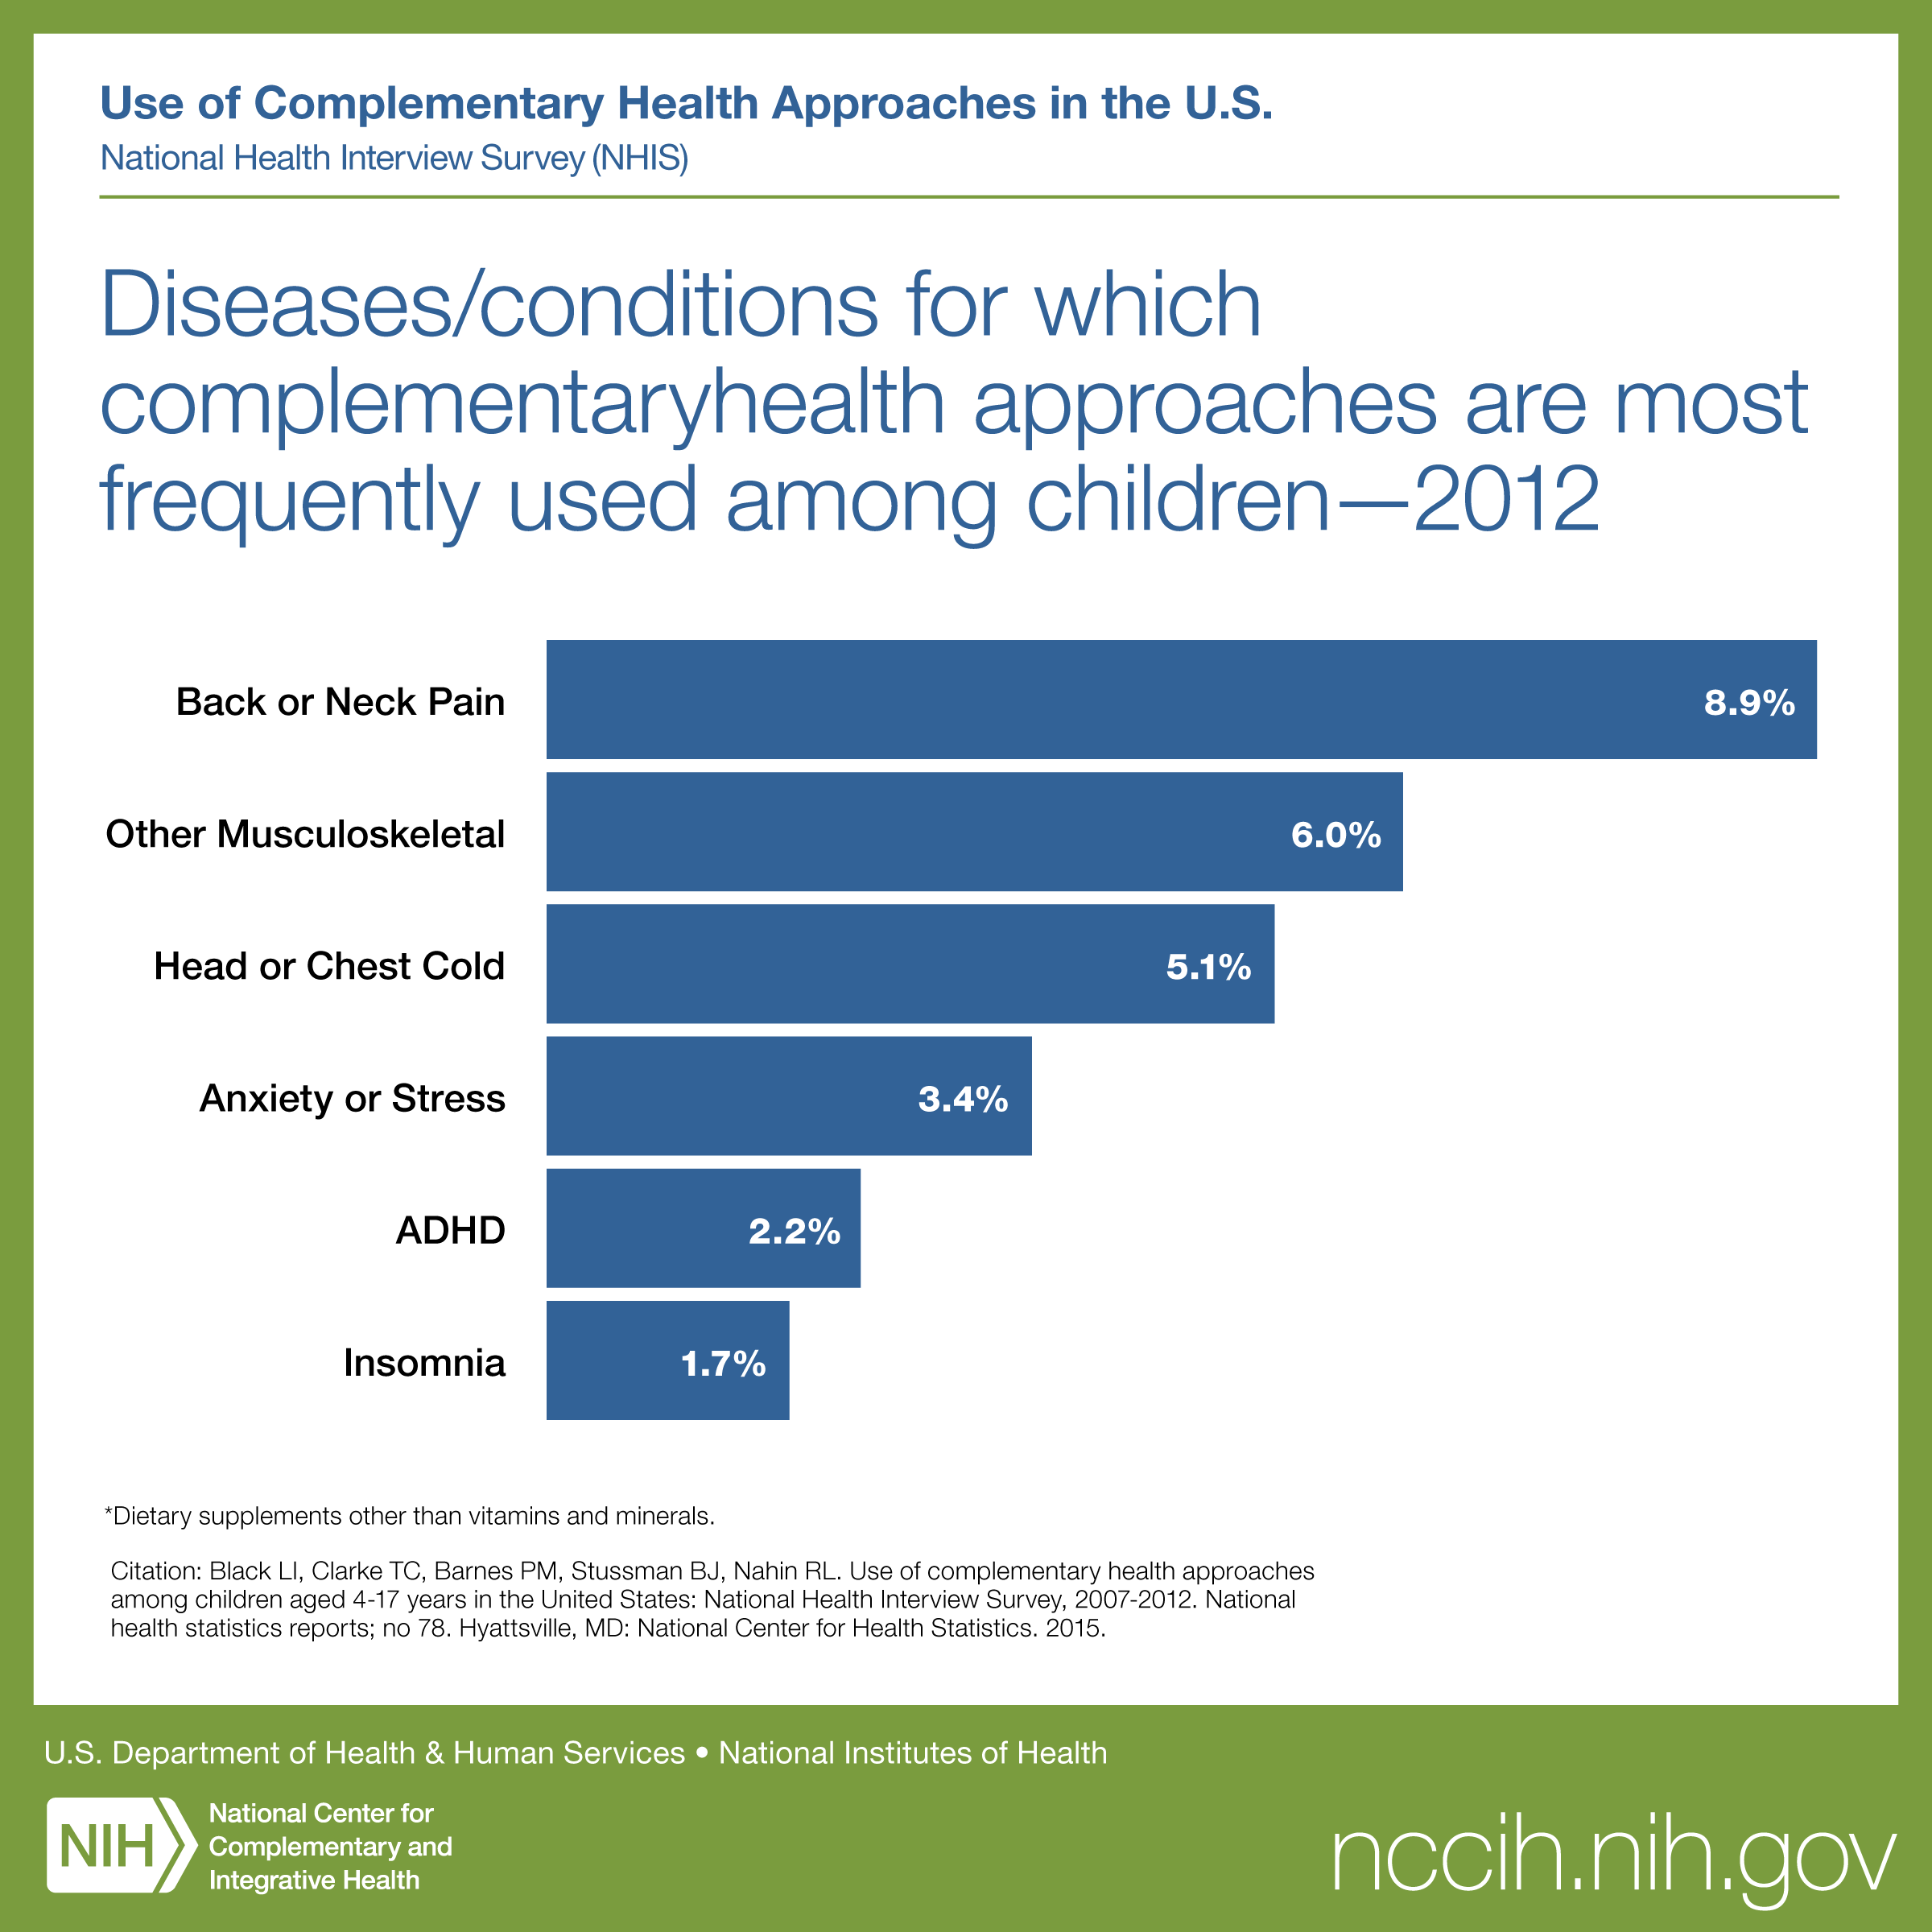 Diseases/Conditions for which complementary health approaches are most frequently used among children -- 2012